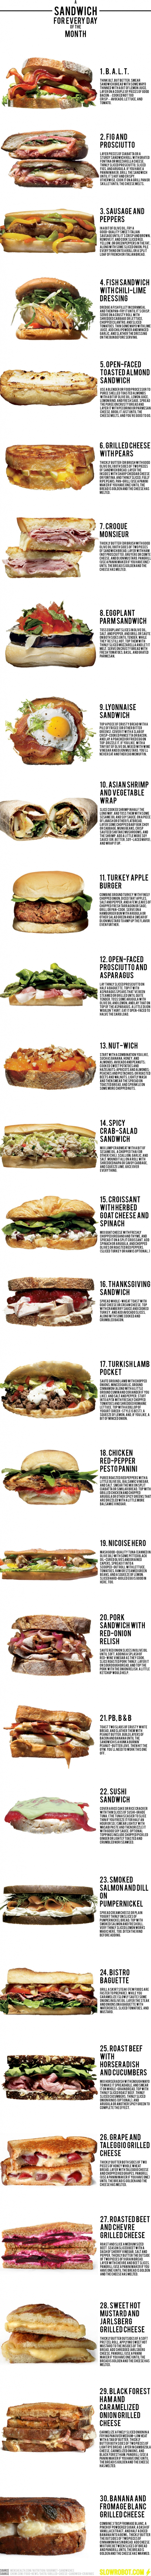 a month of sandwiches